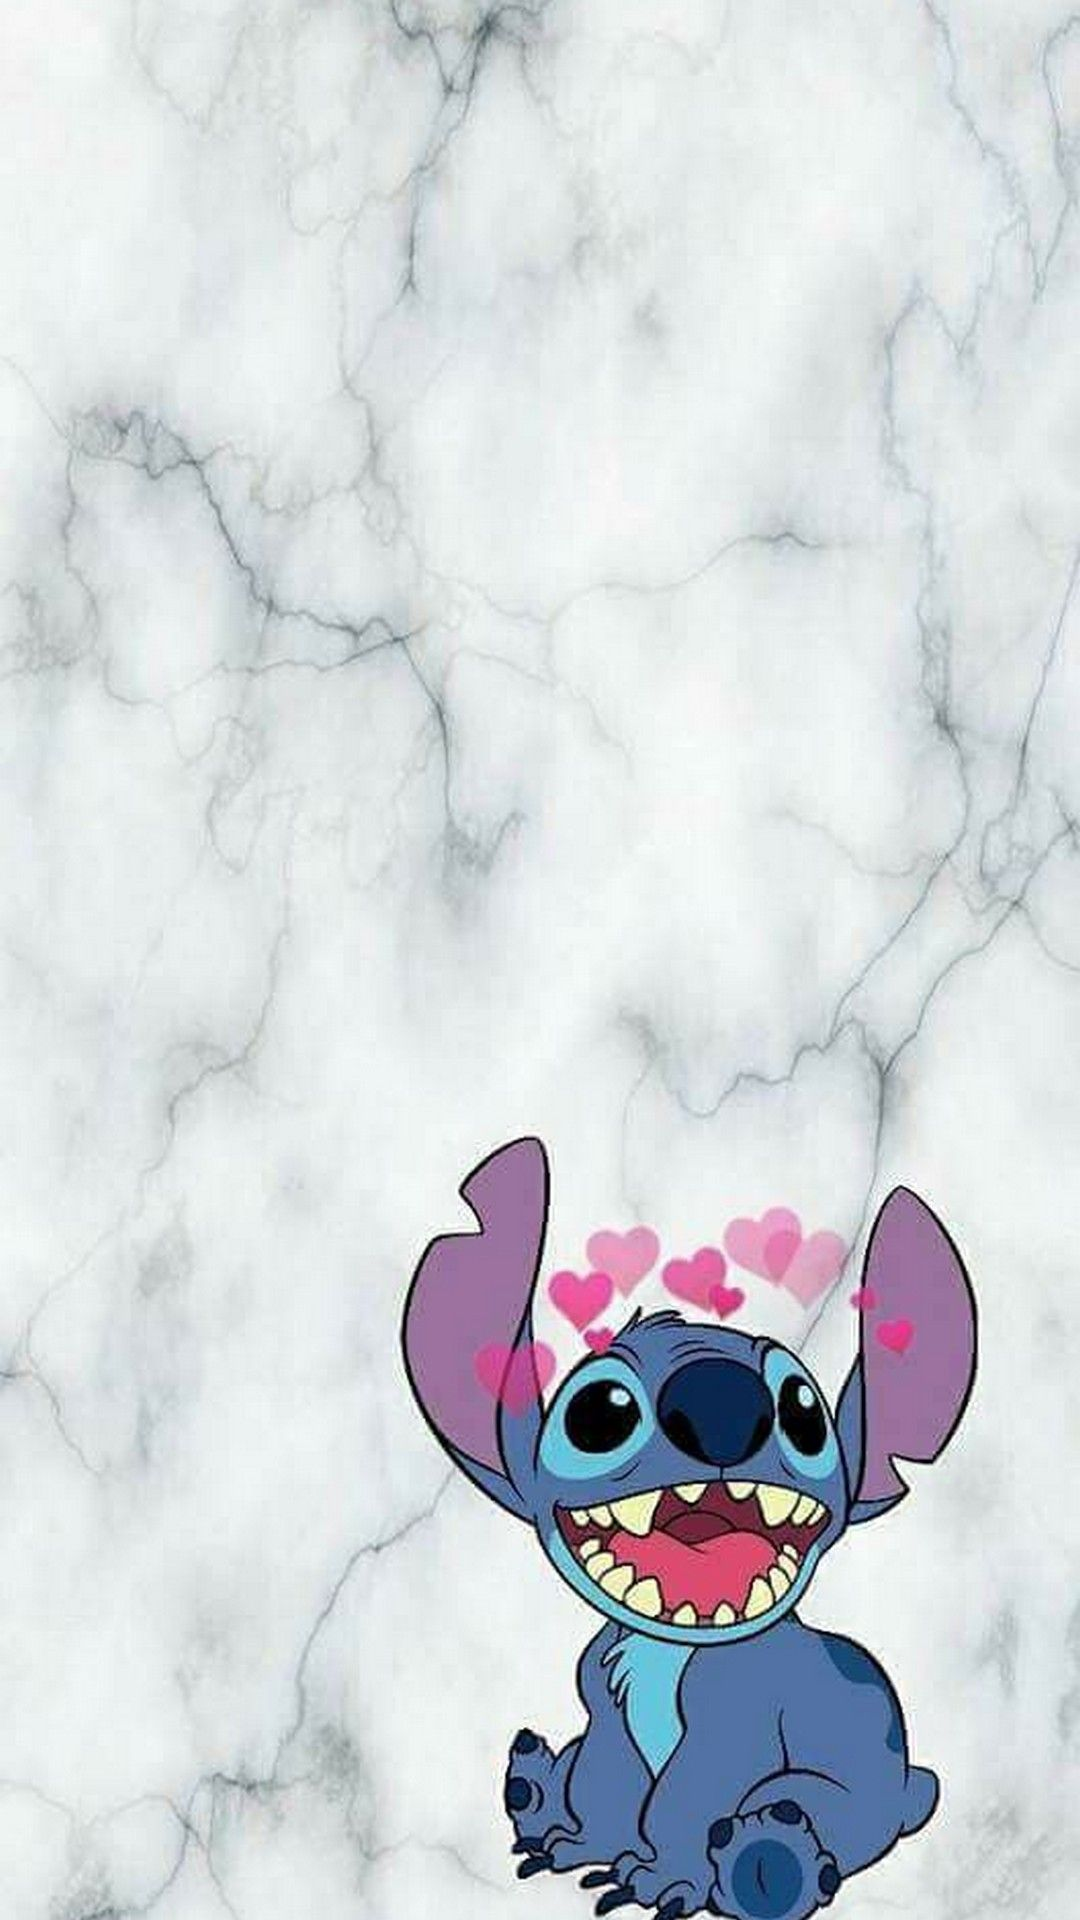 1080x1920 Stitch Wallpaper For Phone | Best HD Wallpapers | Wallpaperscute in ...